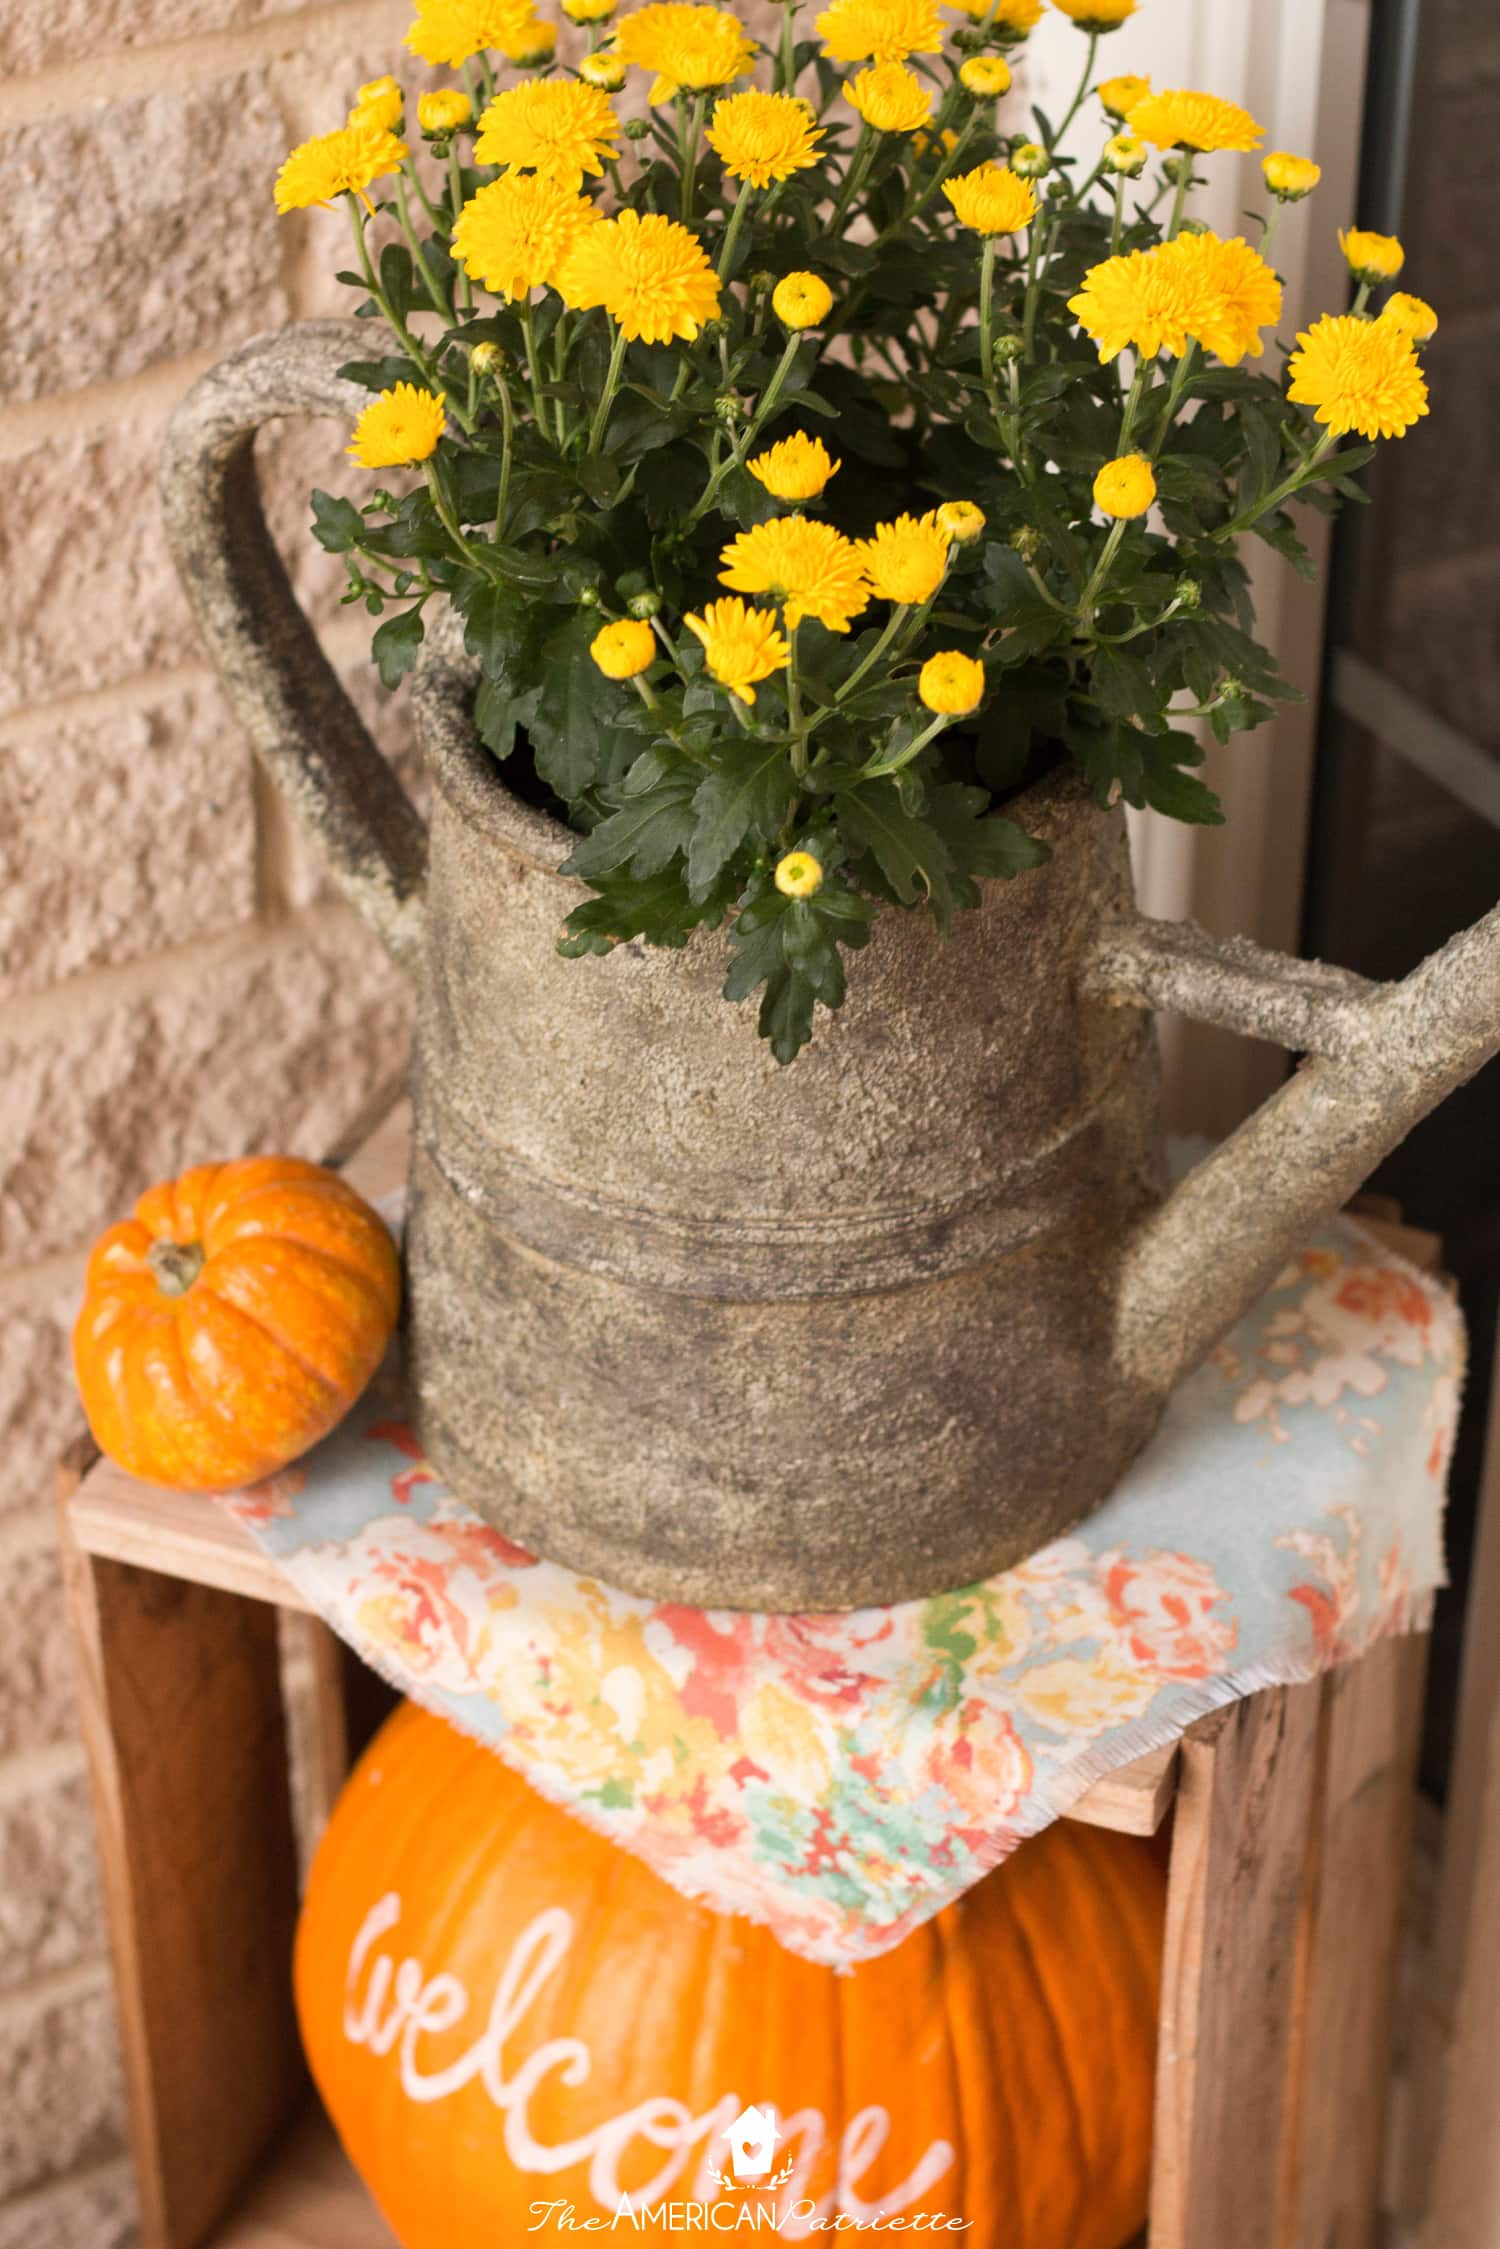 A fall front porch isn't complete without some pumpkins